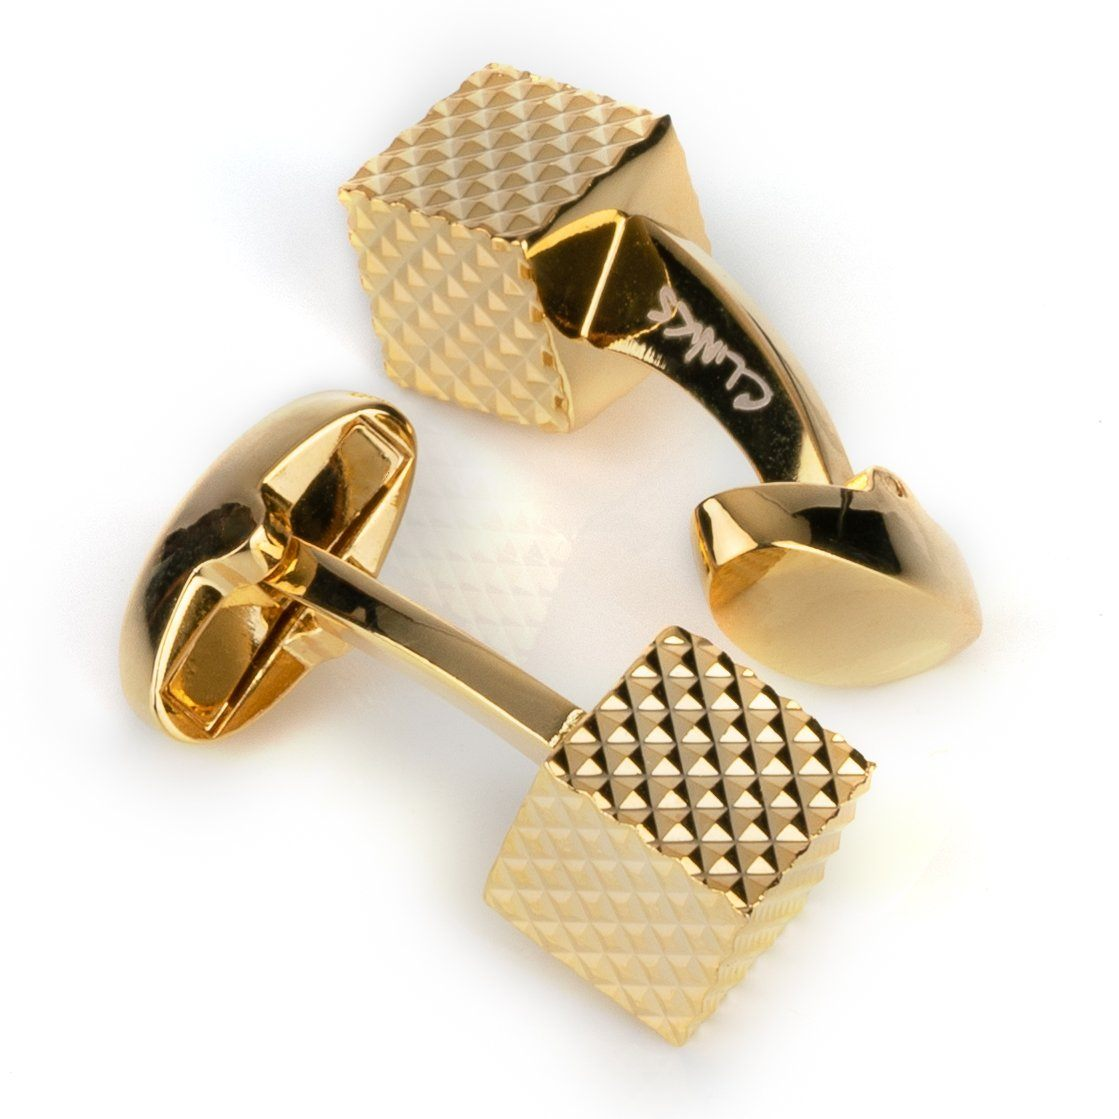 Gold Diamond Textured Cube Cufflinks Classic & Modern Cufflinks Clinks Australia Gold Diamond Textured Cube Cufflinks